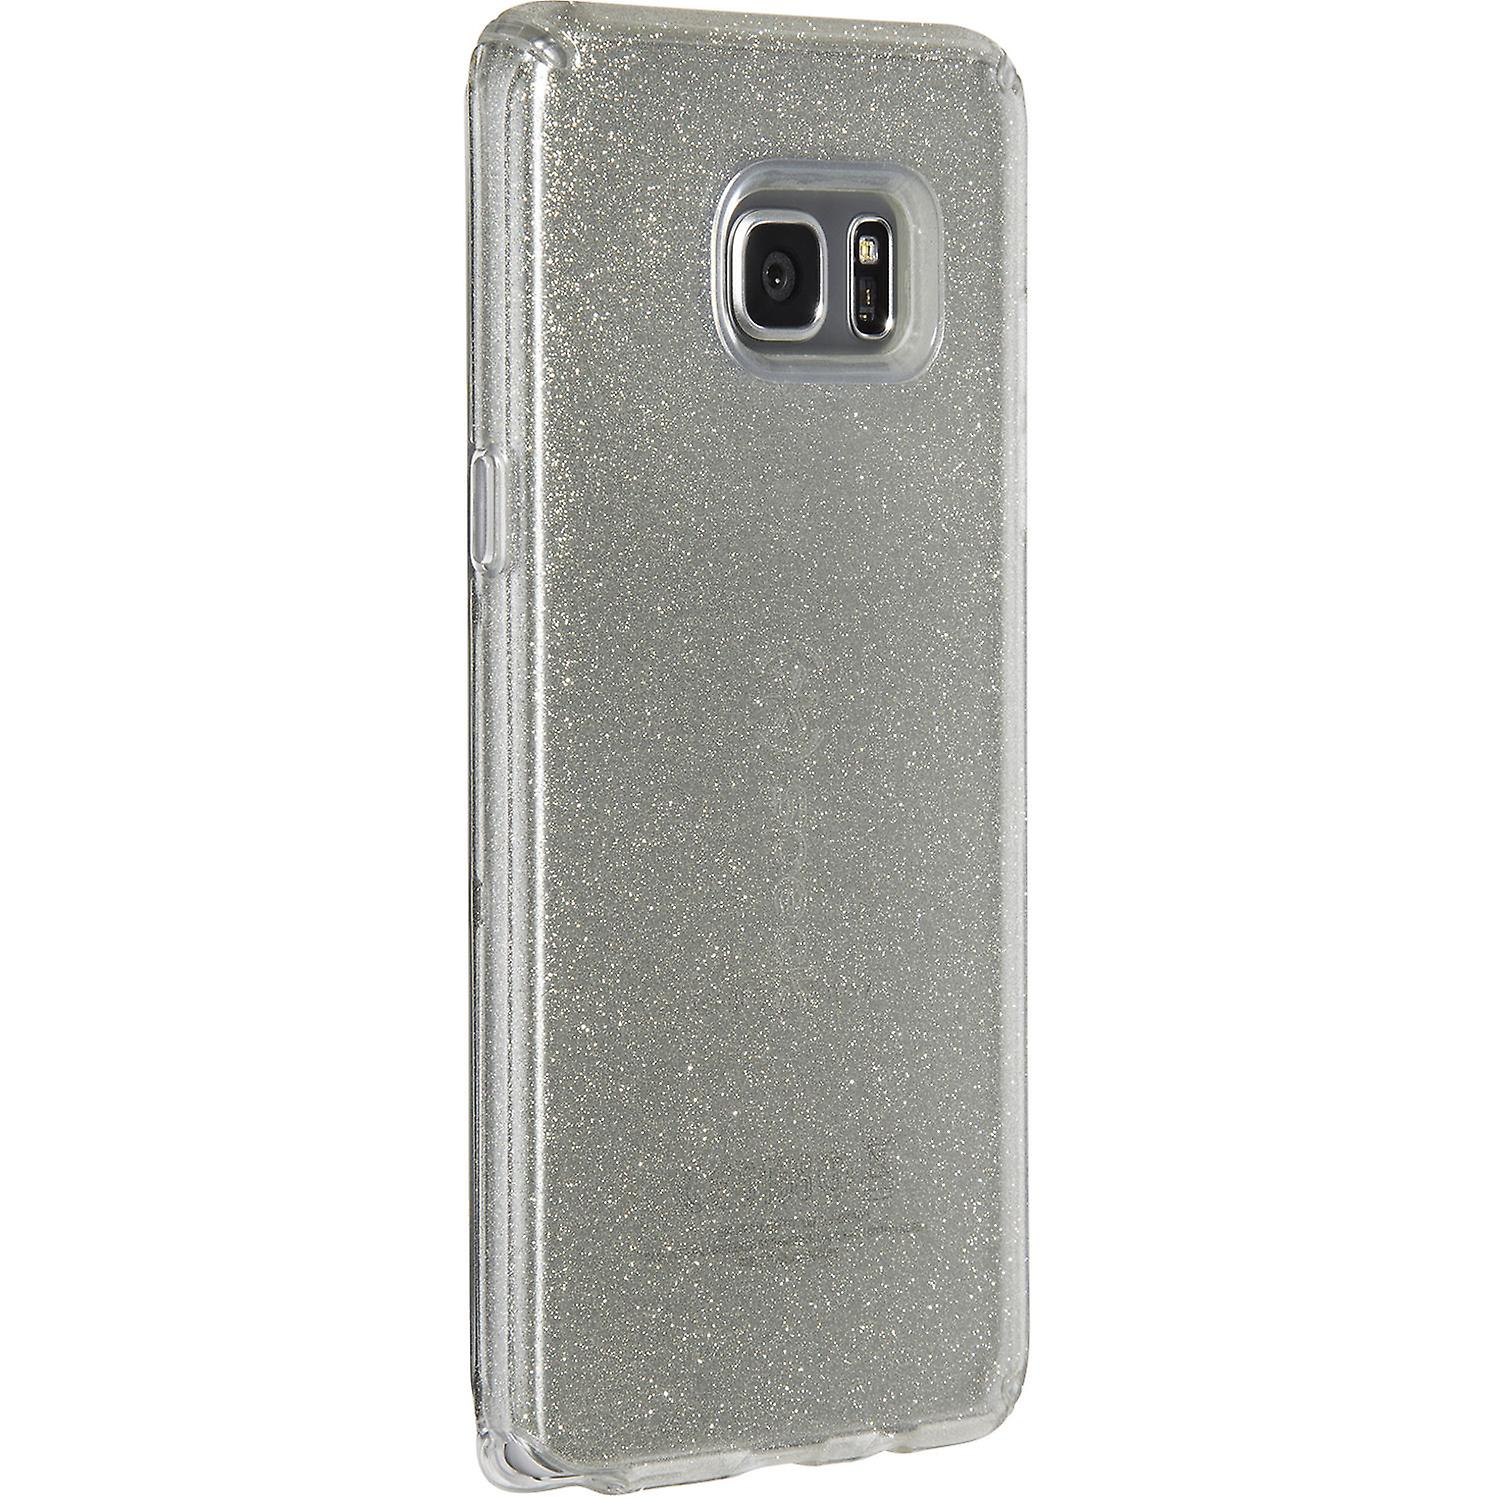 the best attitude 2e6c3 2db12 5 Pack -Speck CandyShell Clear Case for SamsunG Galaxy Note 7 - Clear/Gold  Glitt